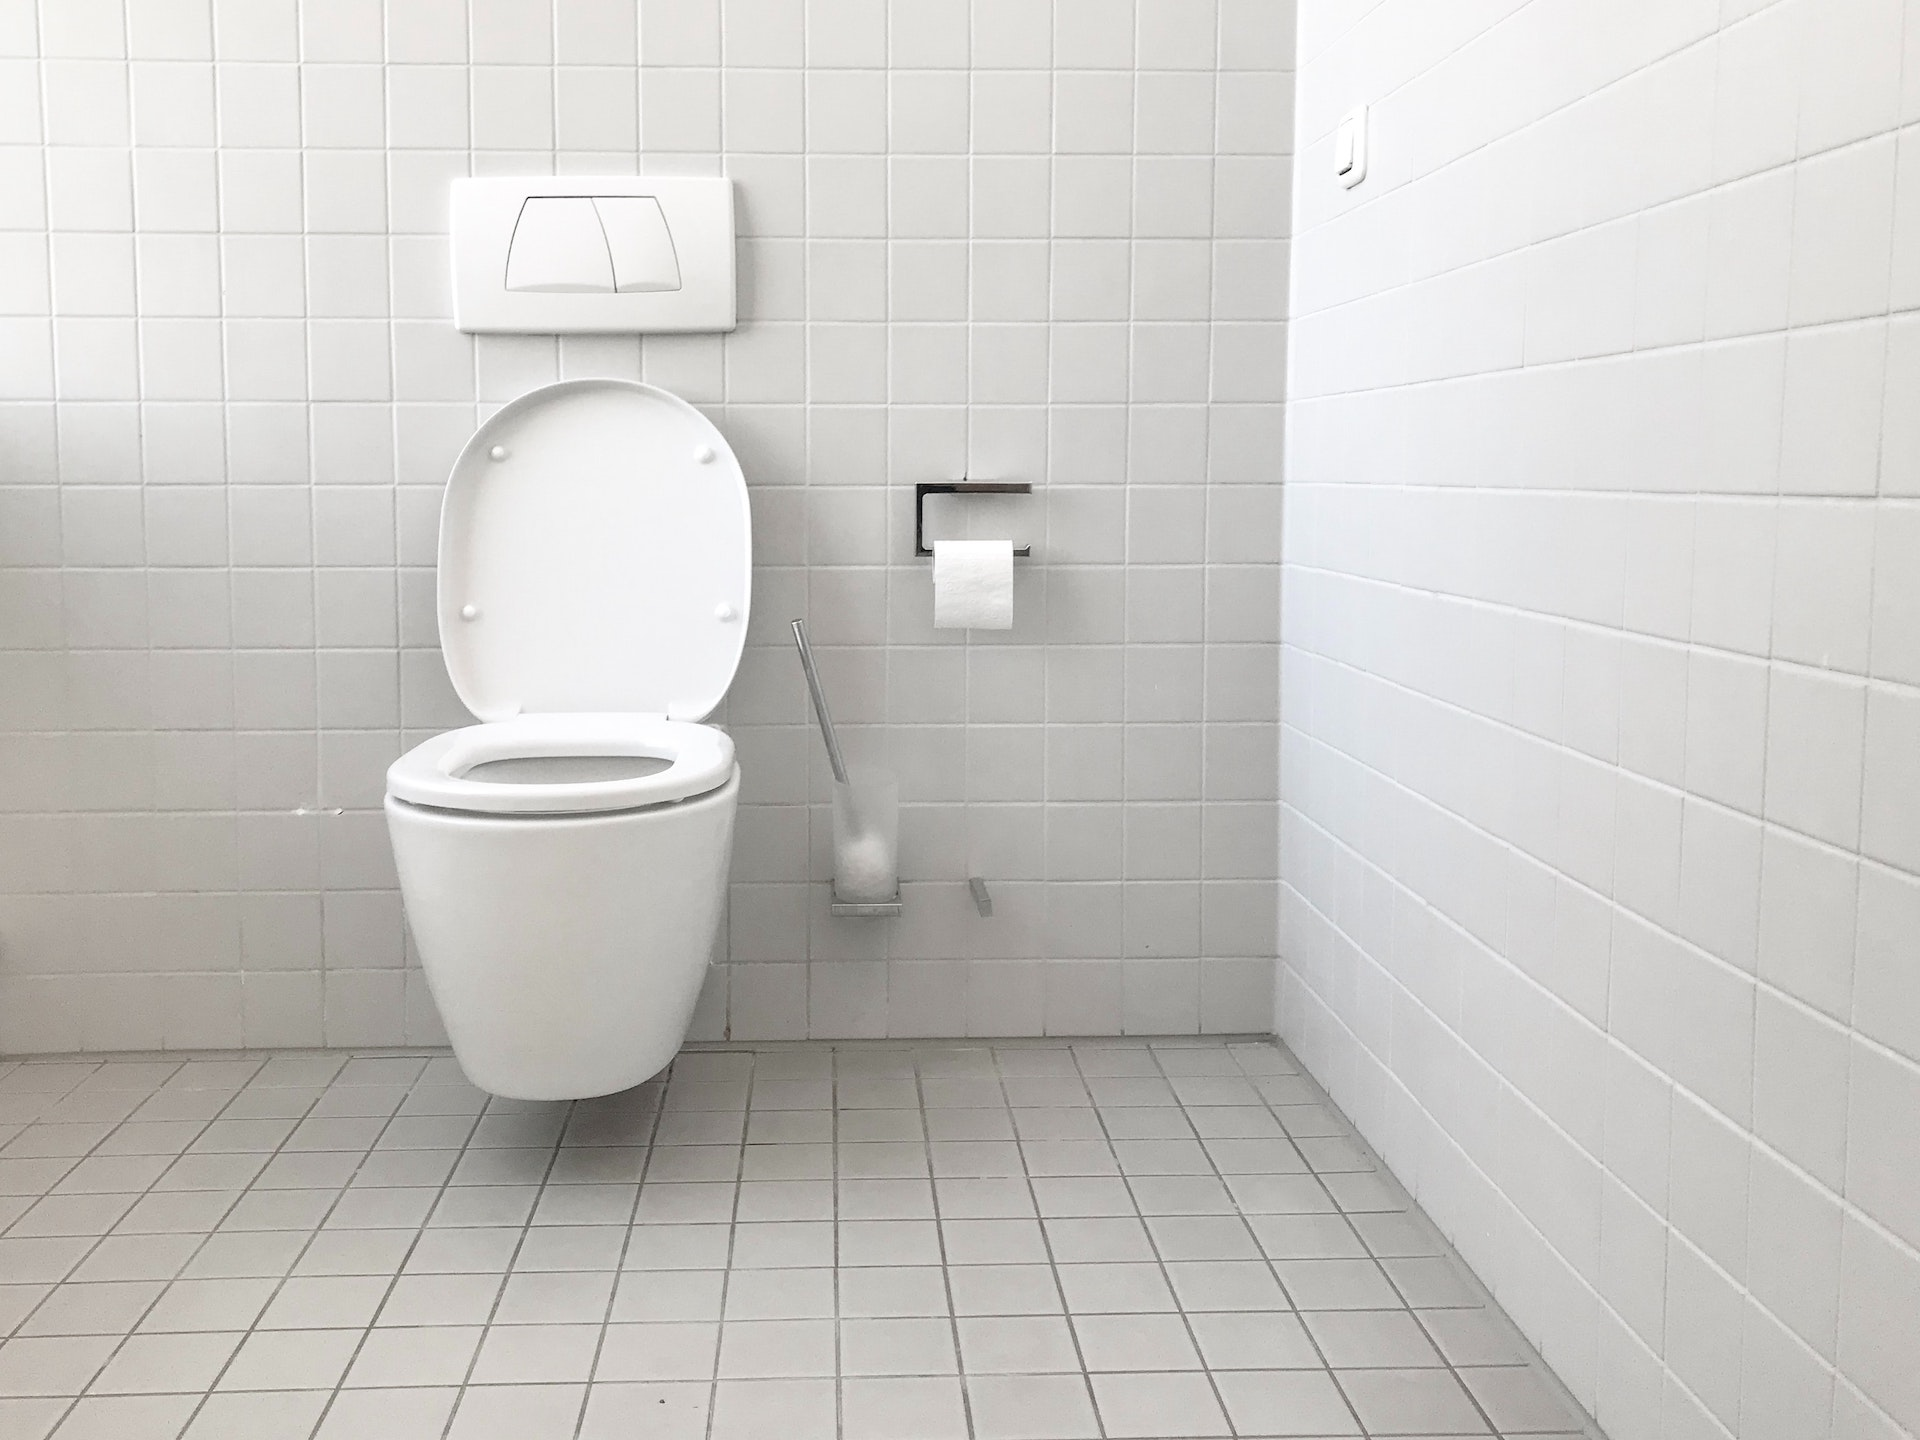 best upflush toilet 2021